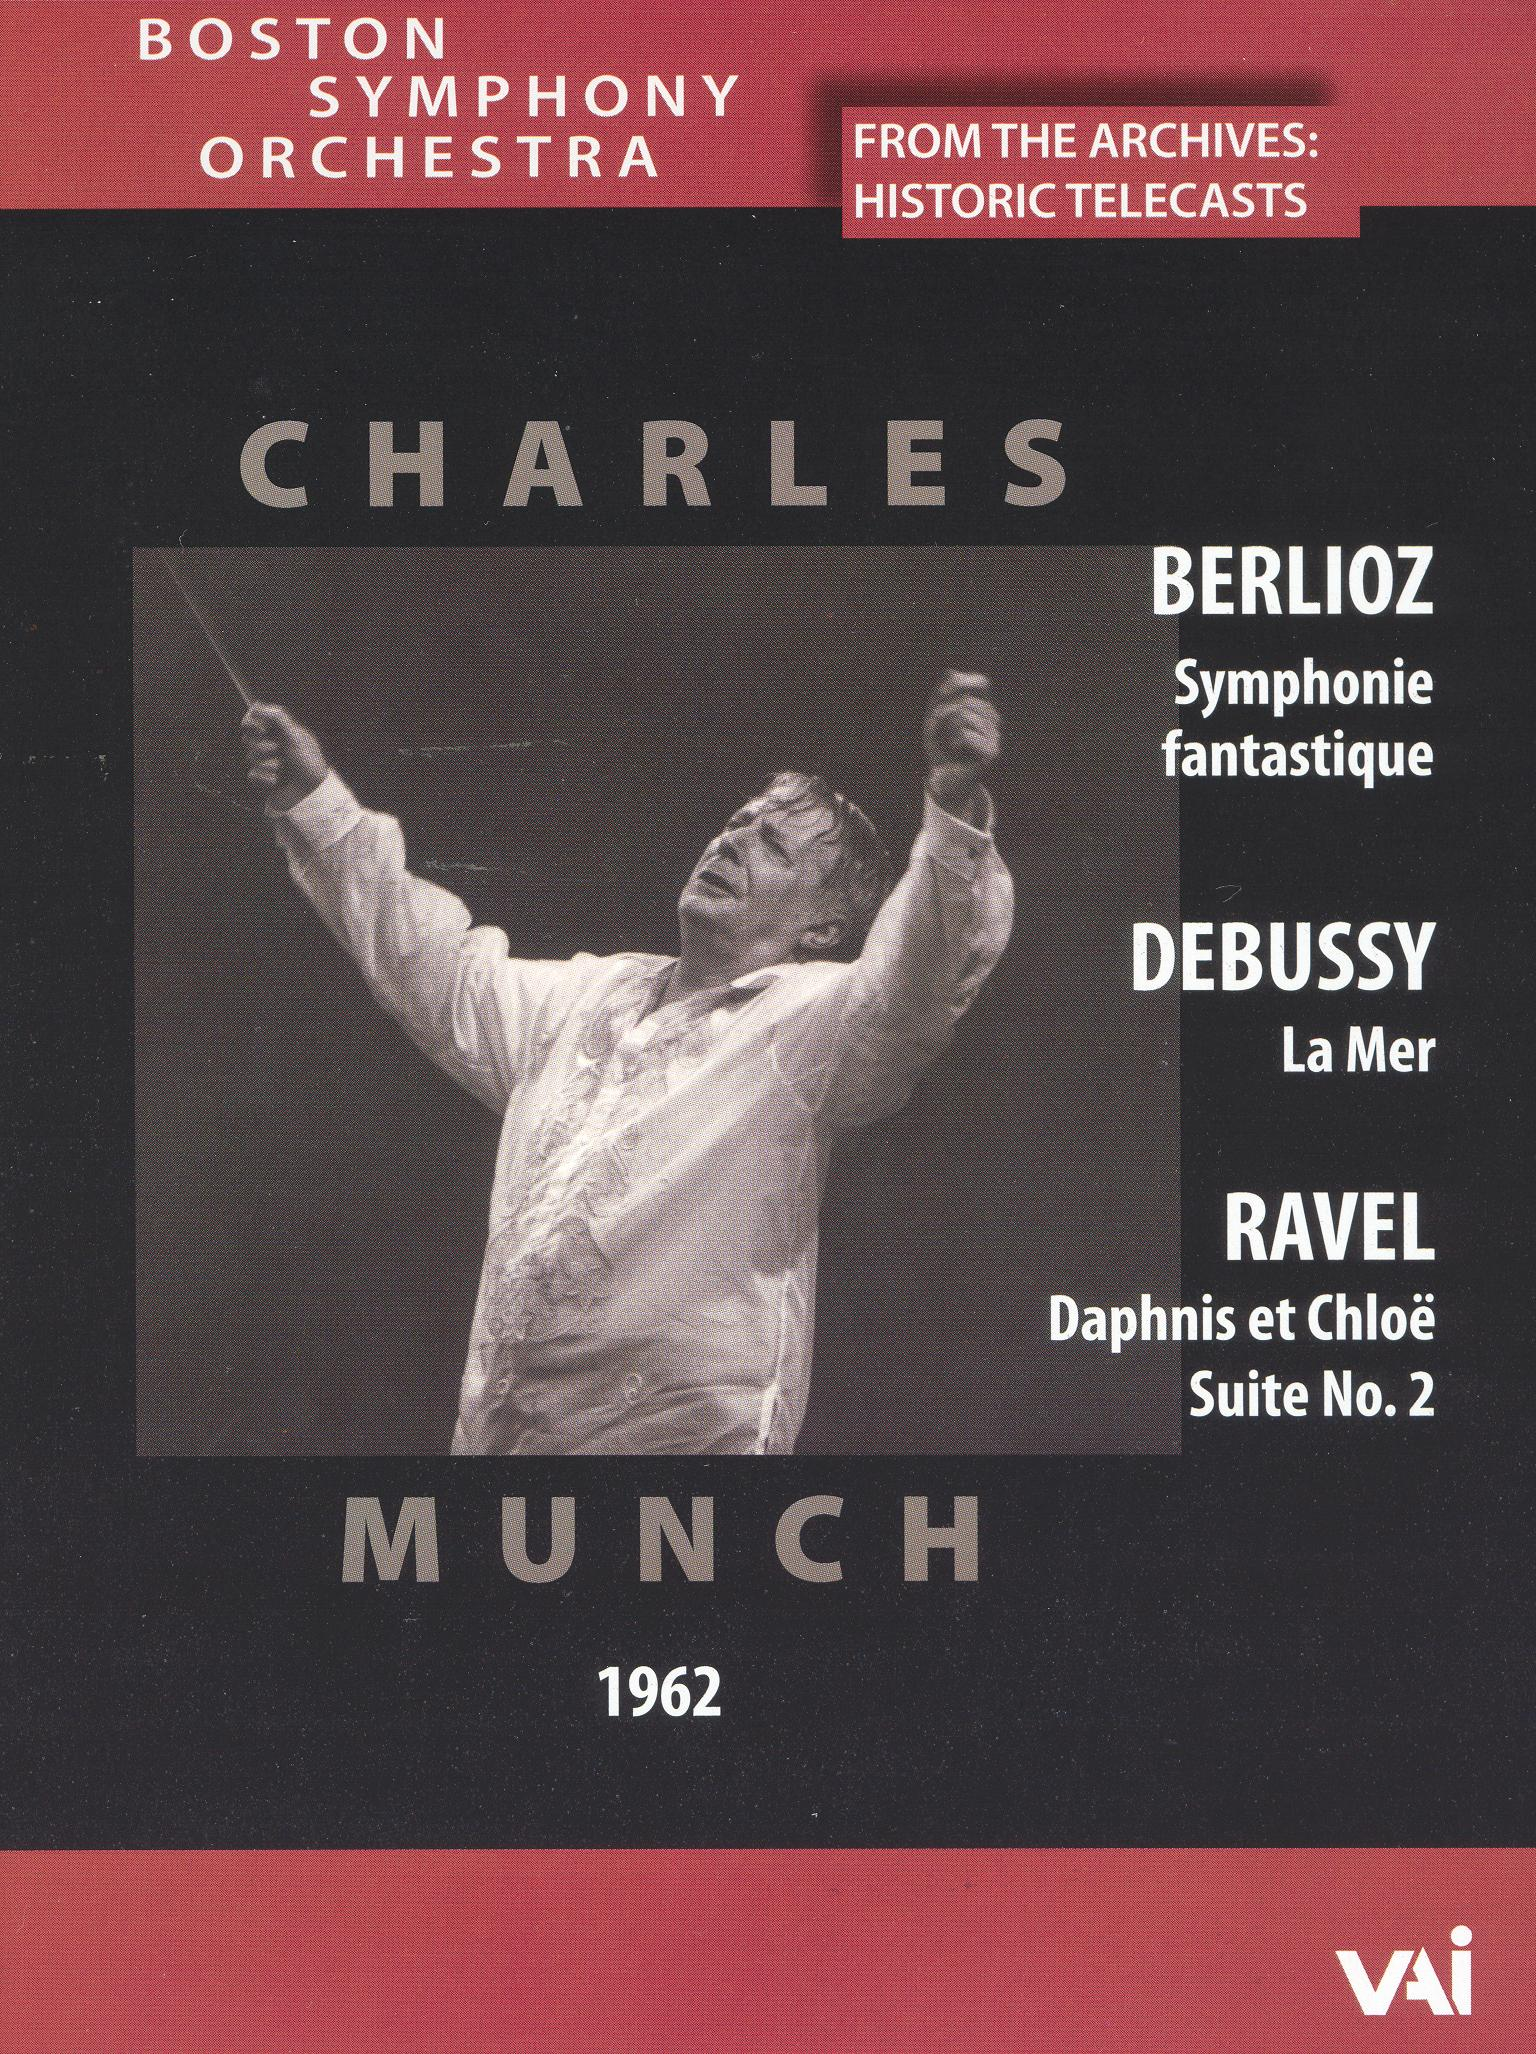 Charles Munch Conducts